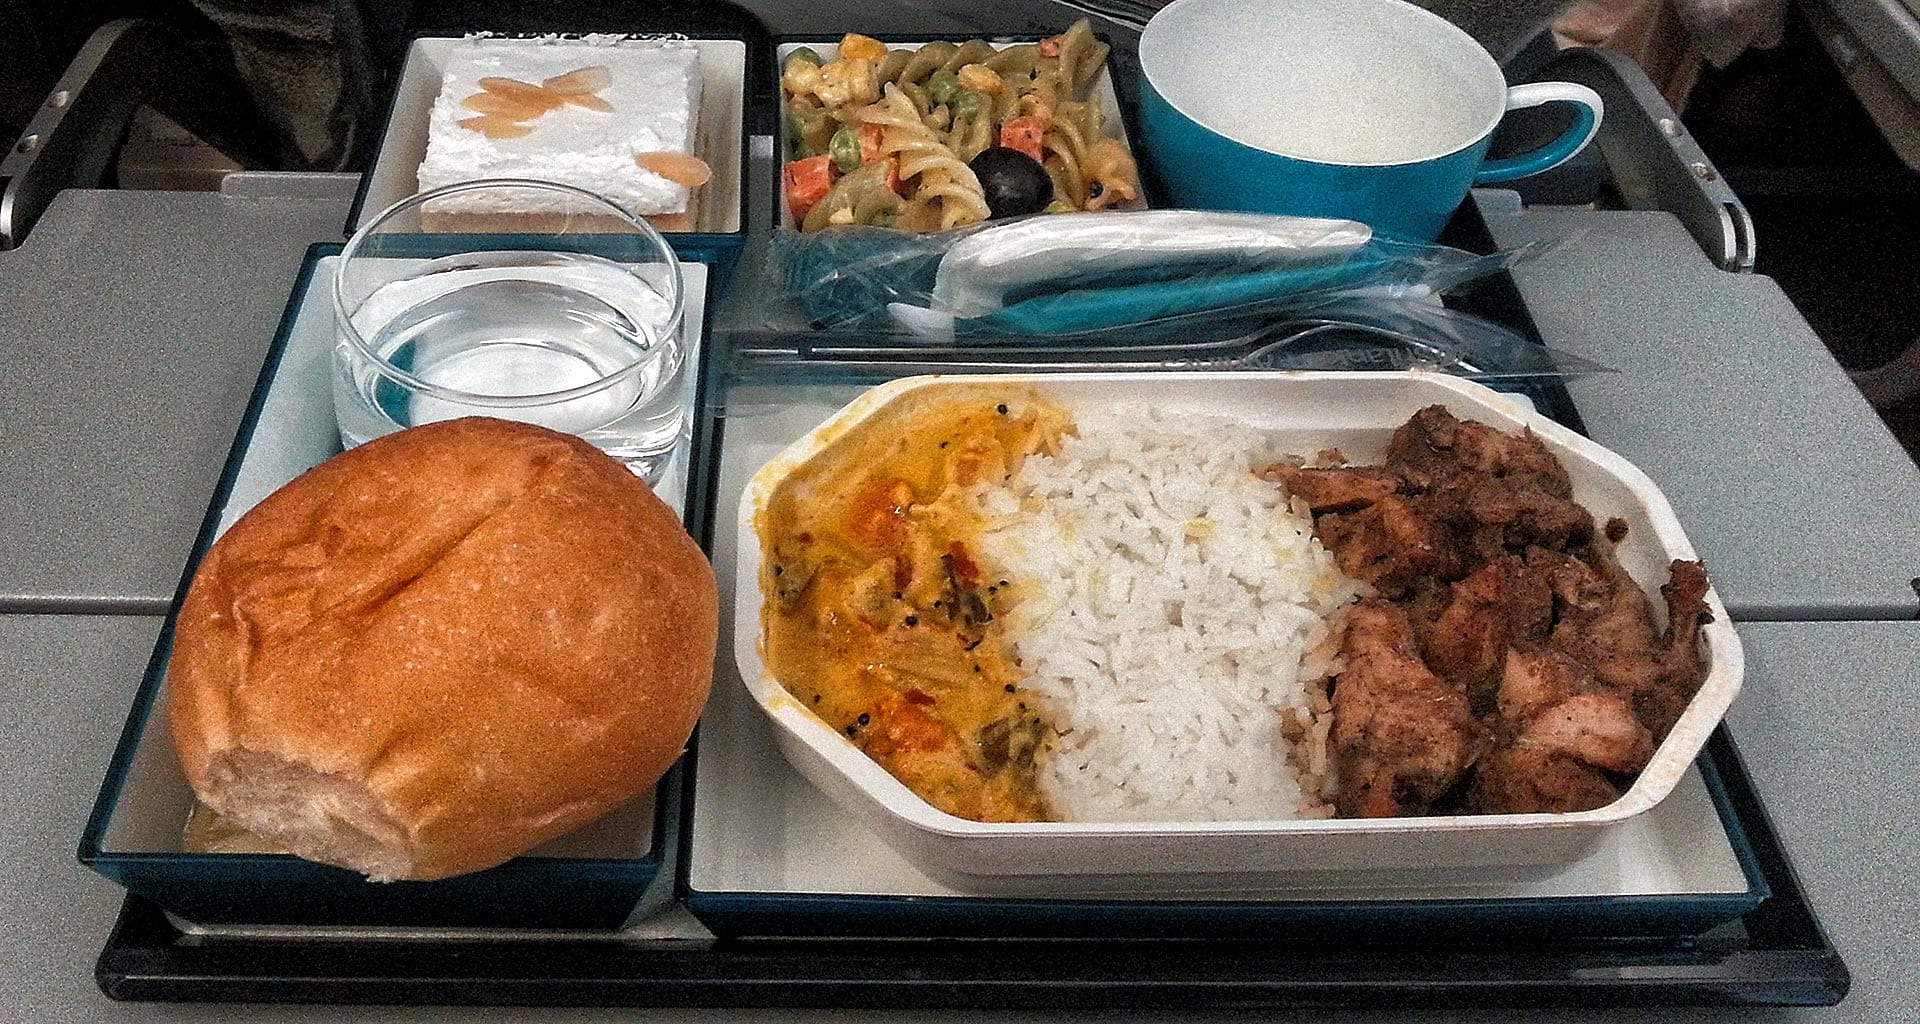 Sri Lankan airlines economy class meal